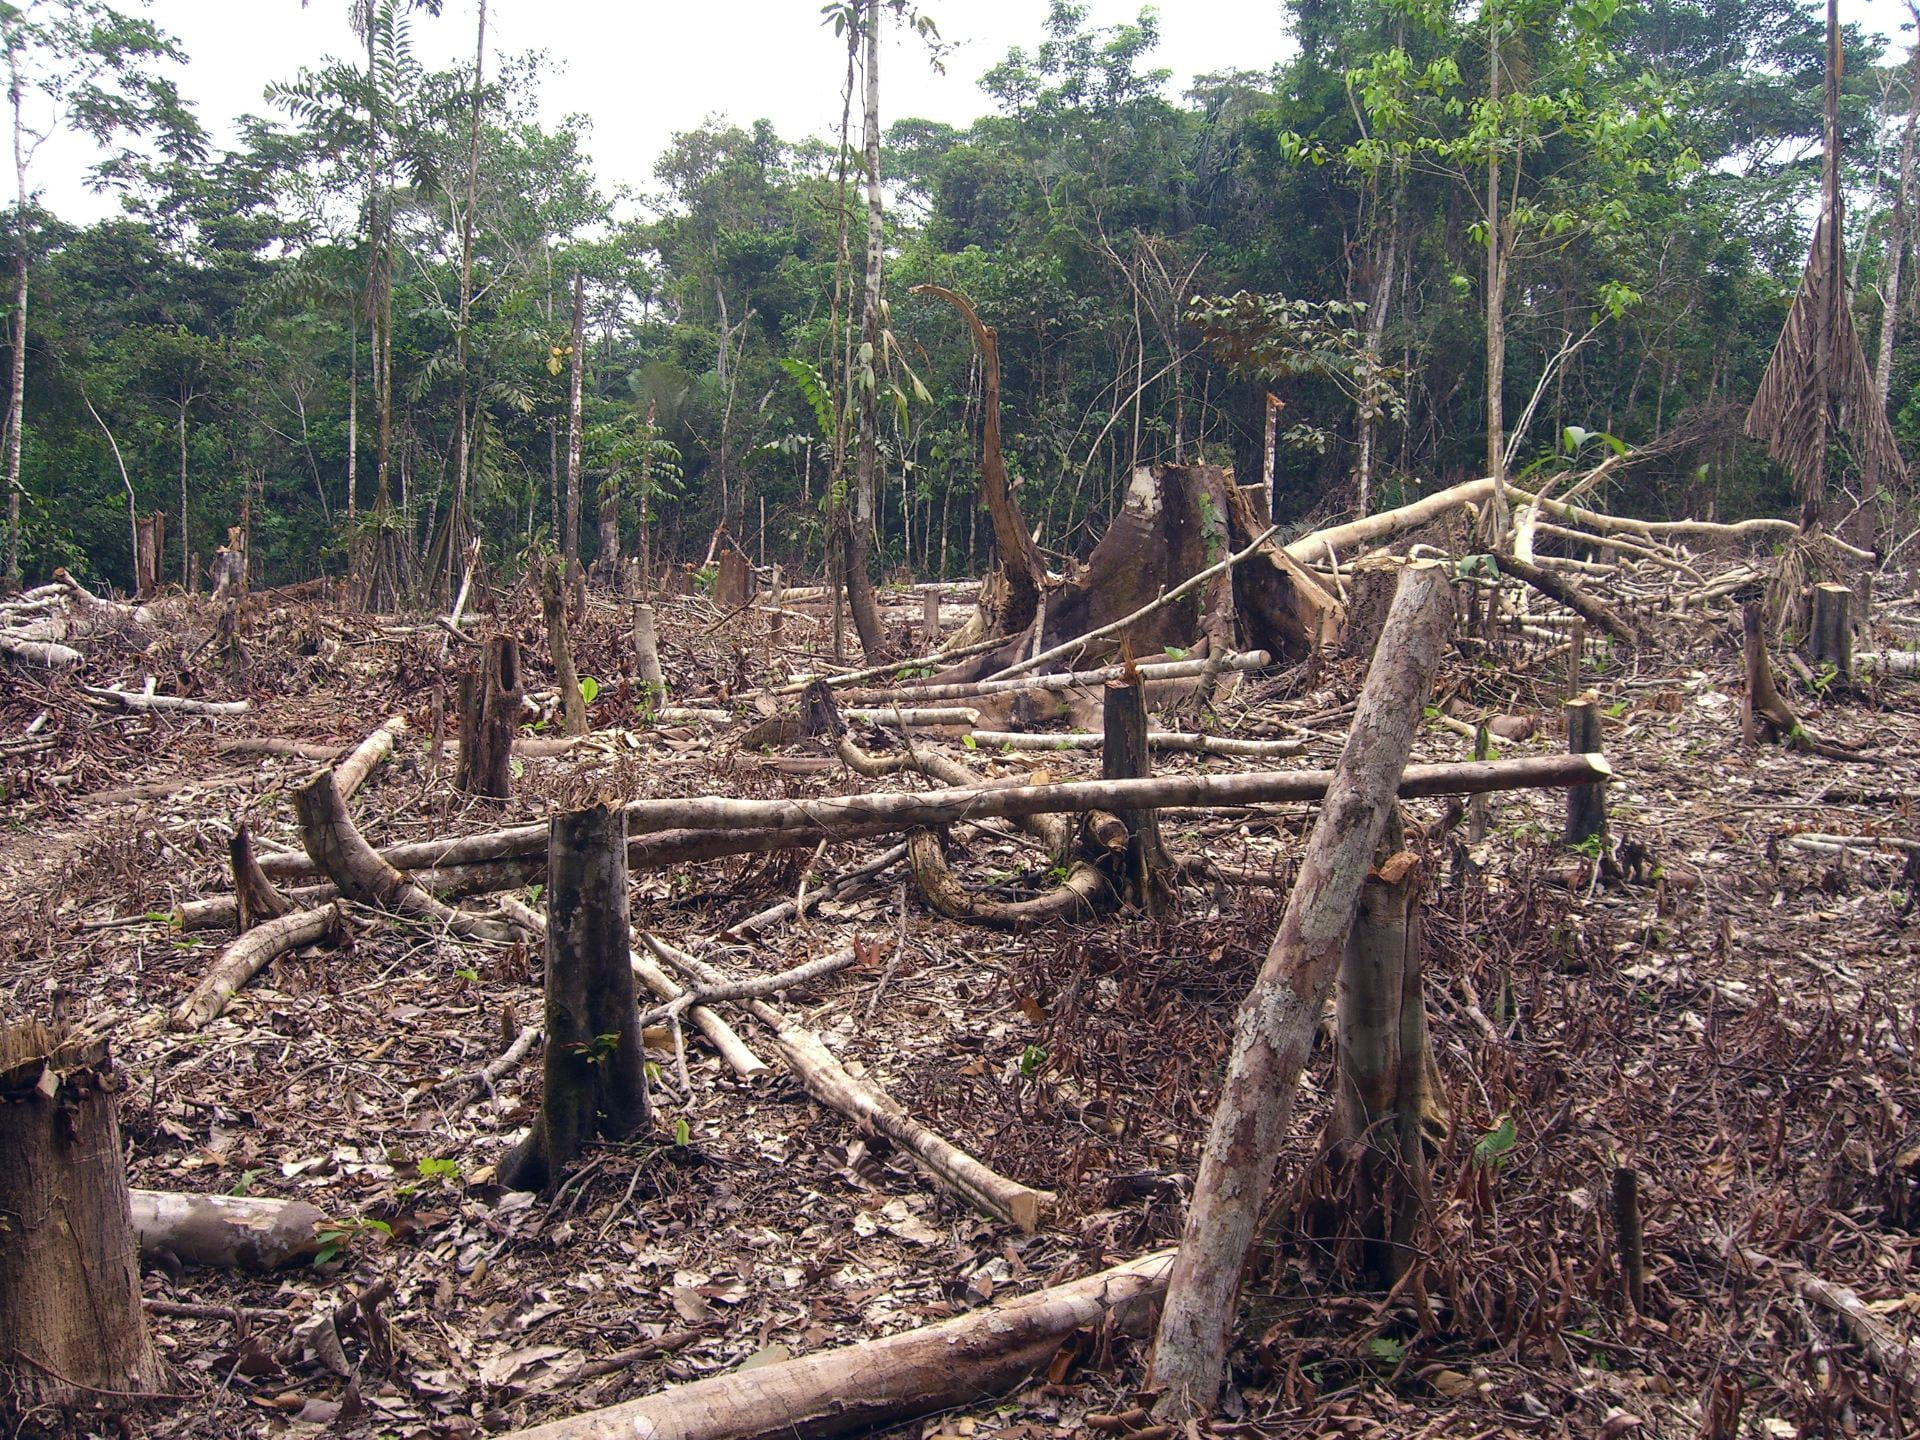 An area of the Amazon rain forest where trees have been cut down and burned.